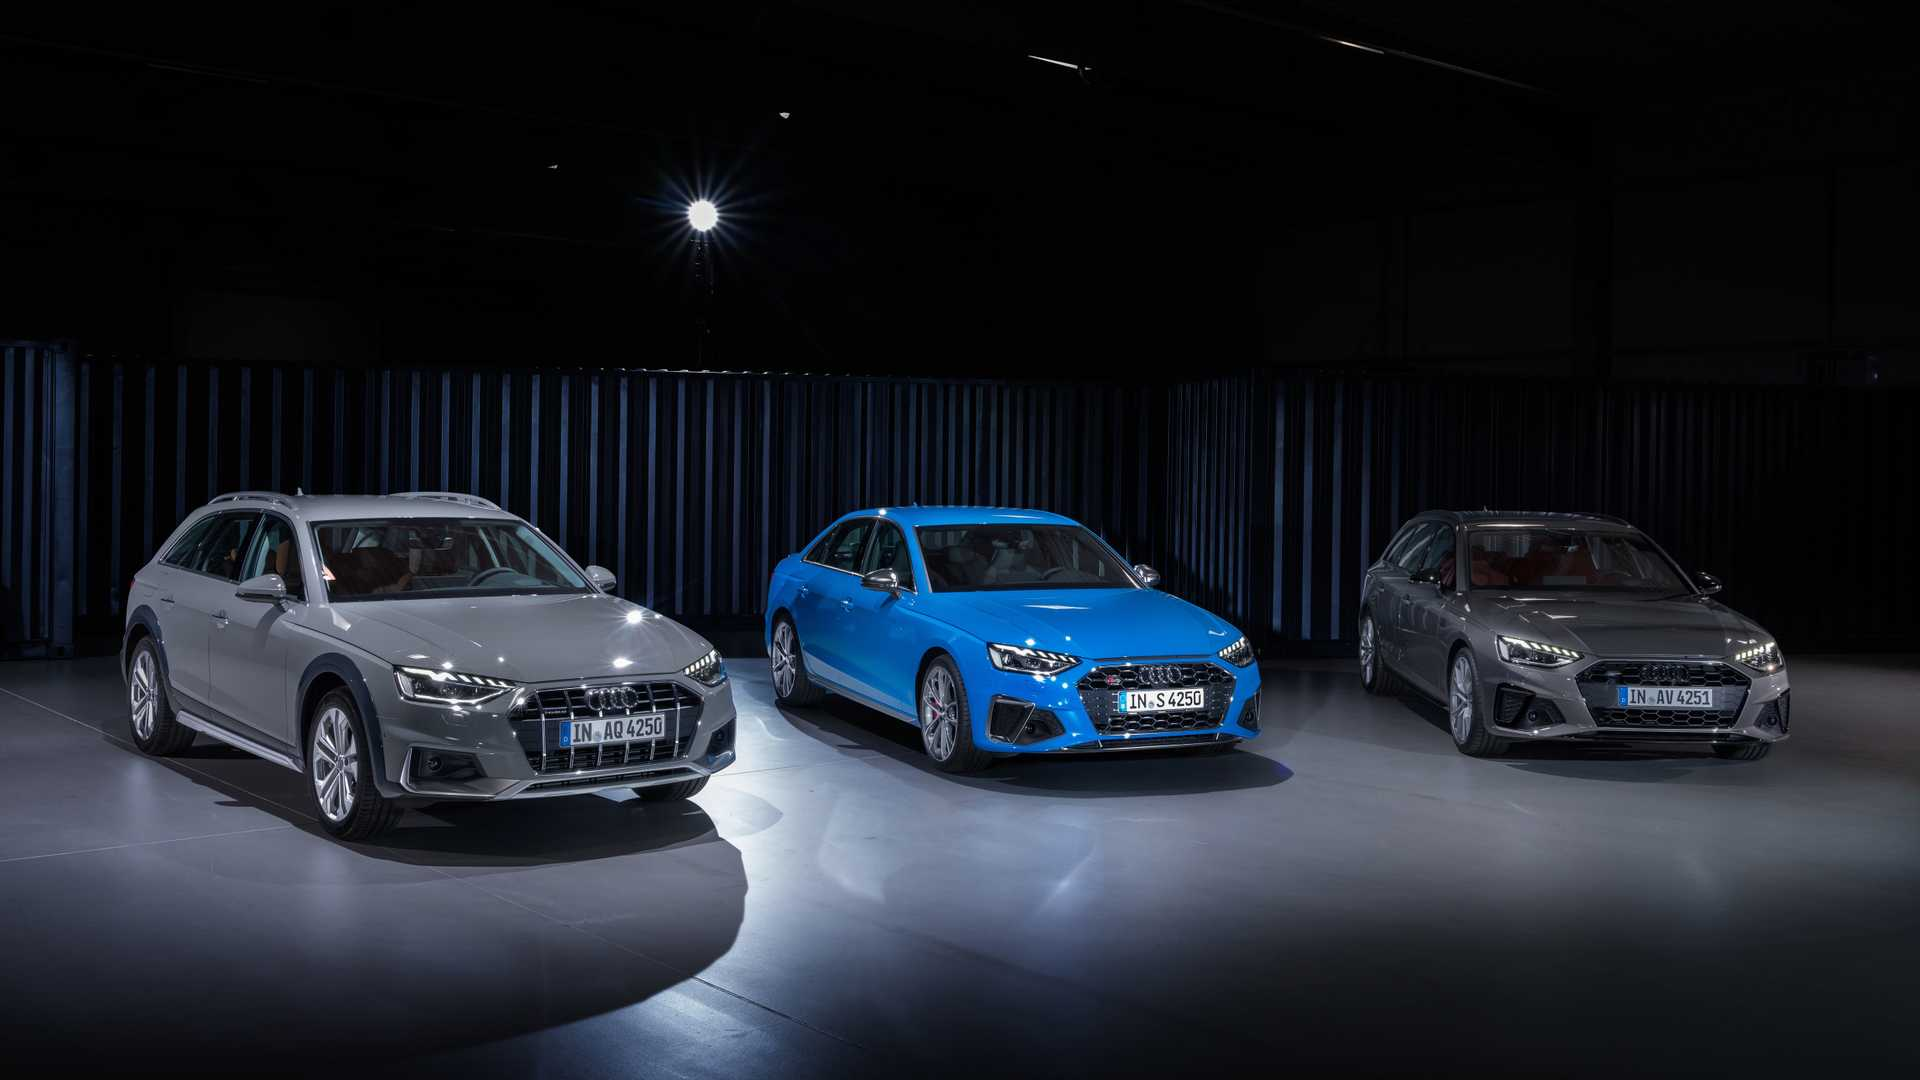 The range of the update encompasses the following car types: sedan/saloon, estate/wagon, and crossover/SUV (the A4 Allroad)